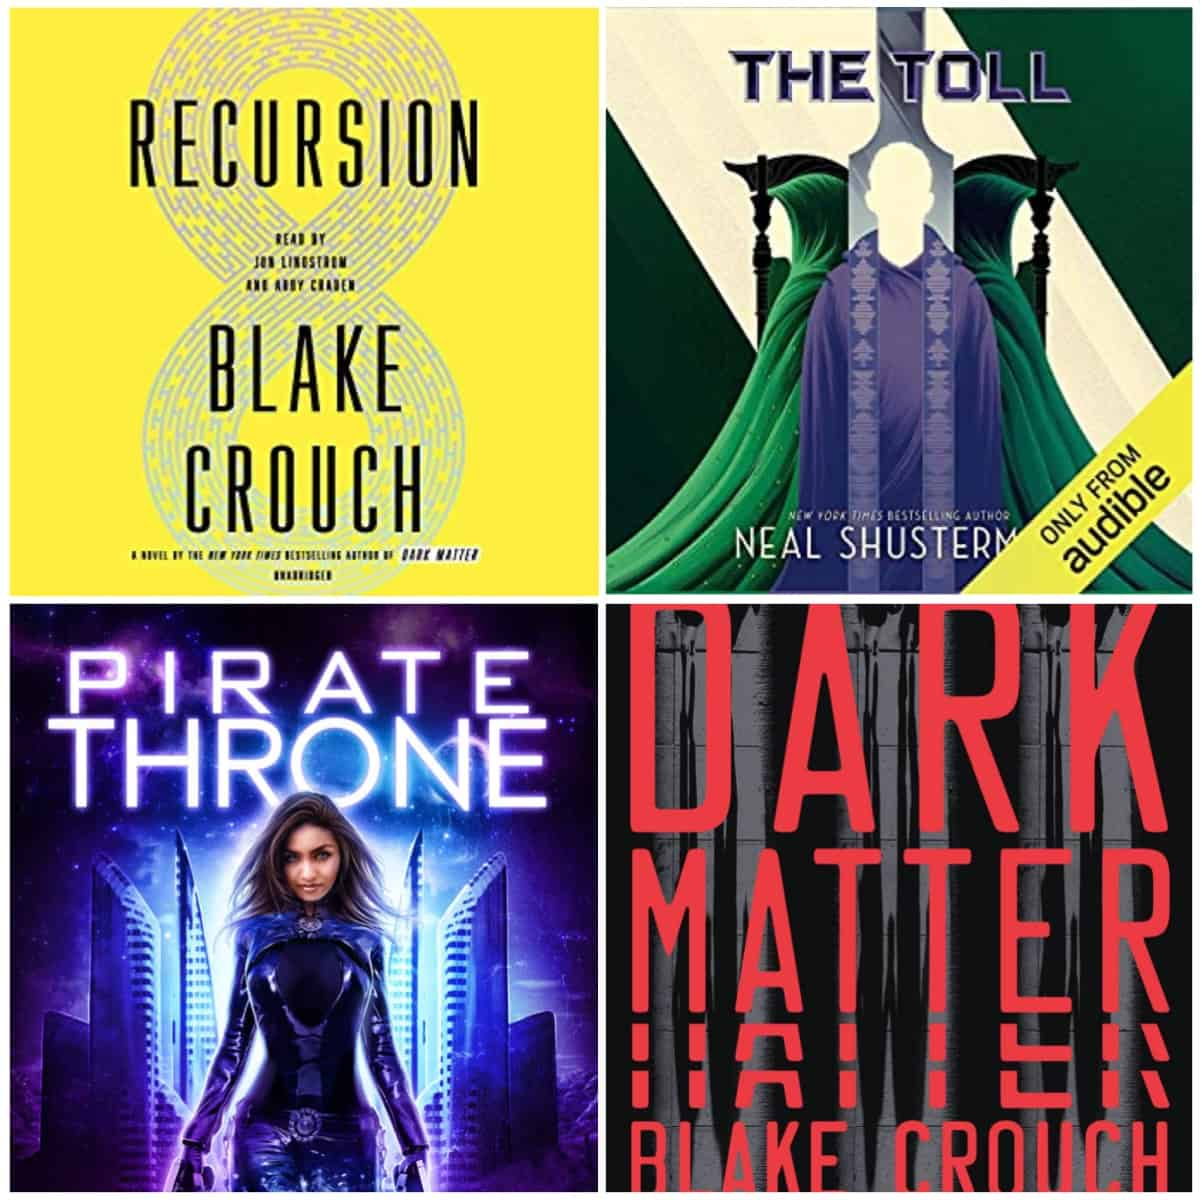 In this Book Chat, our last of 2019, two great thrillers from Blake Crouch, space pirates from Carysa Locke, and fantastic YA sci-fi from Neal Shusterman.